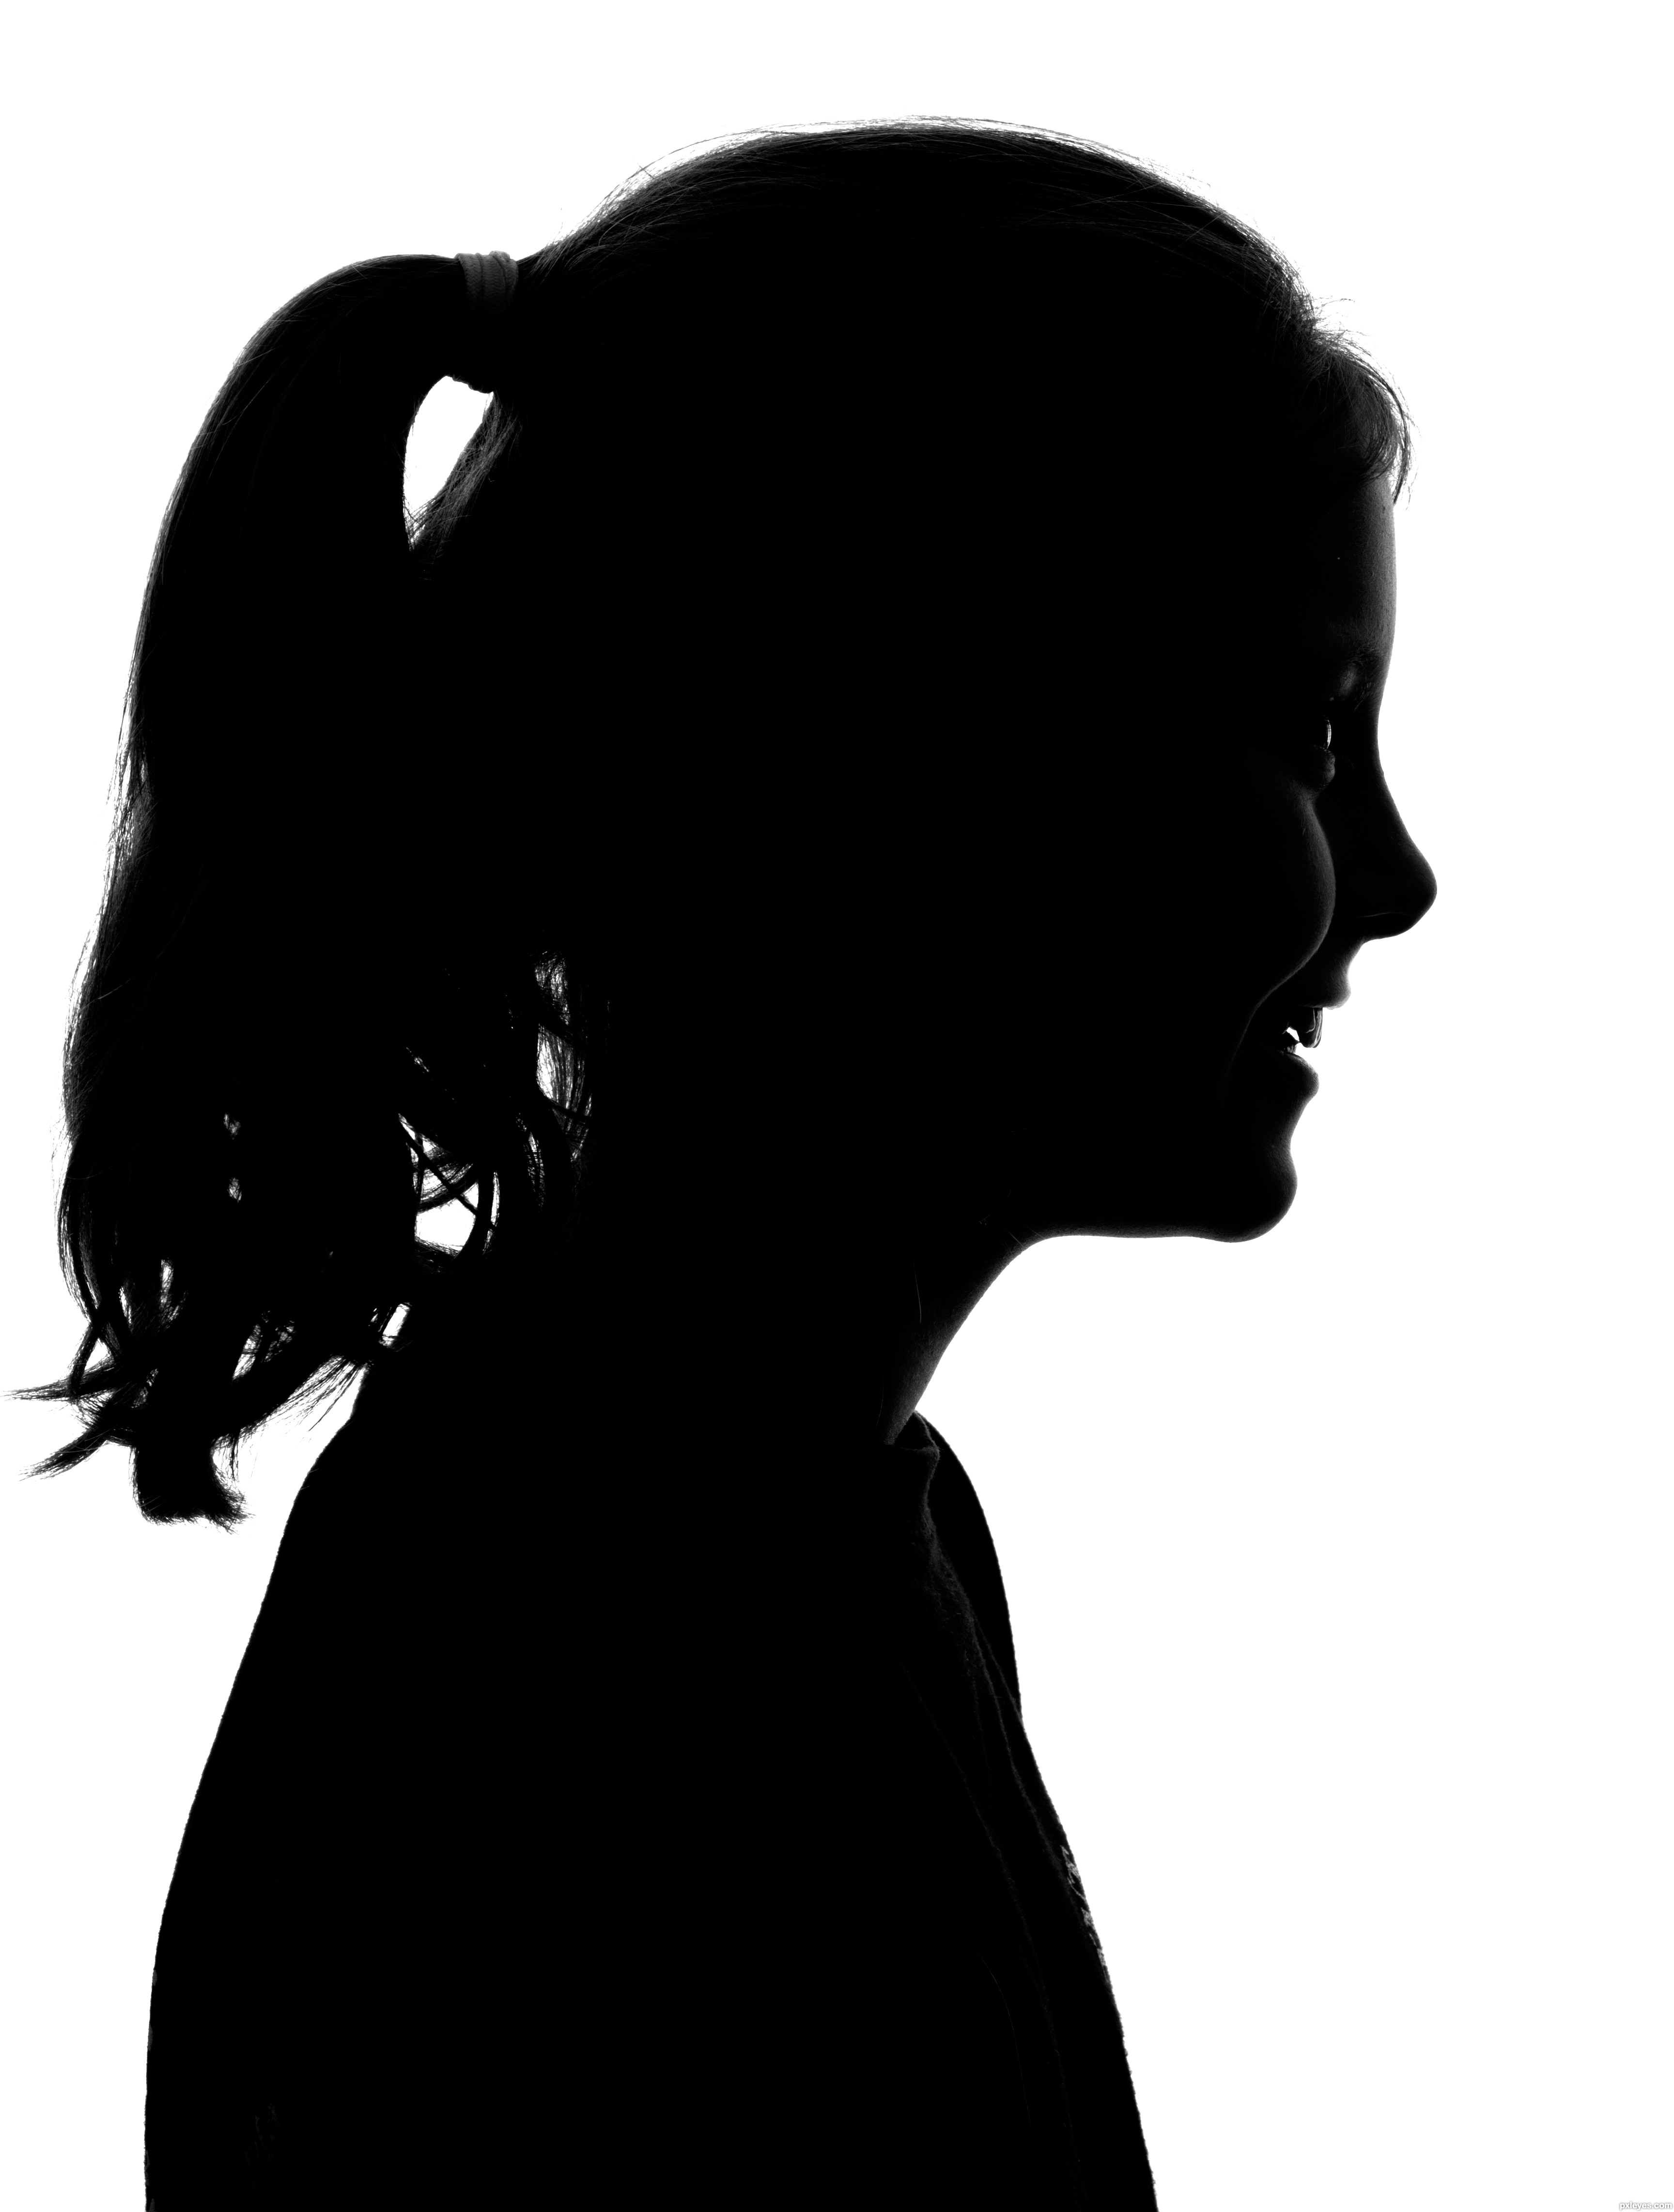 Young girl in dress silhouette